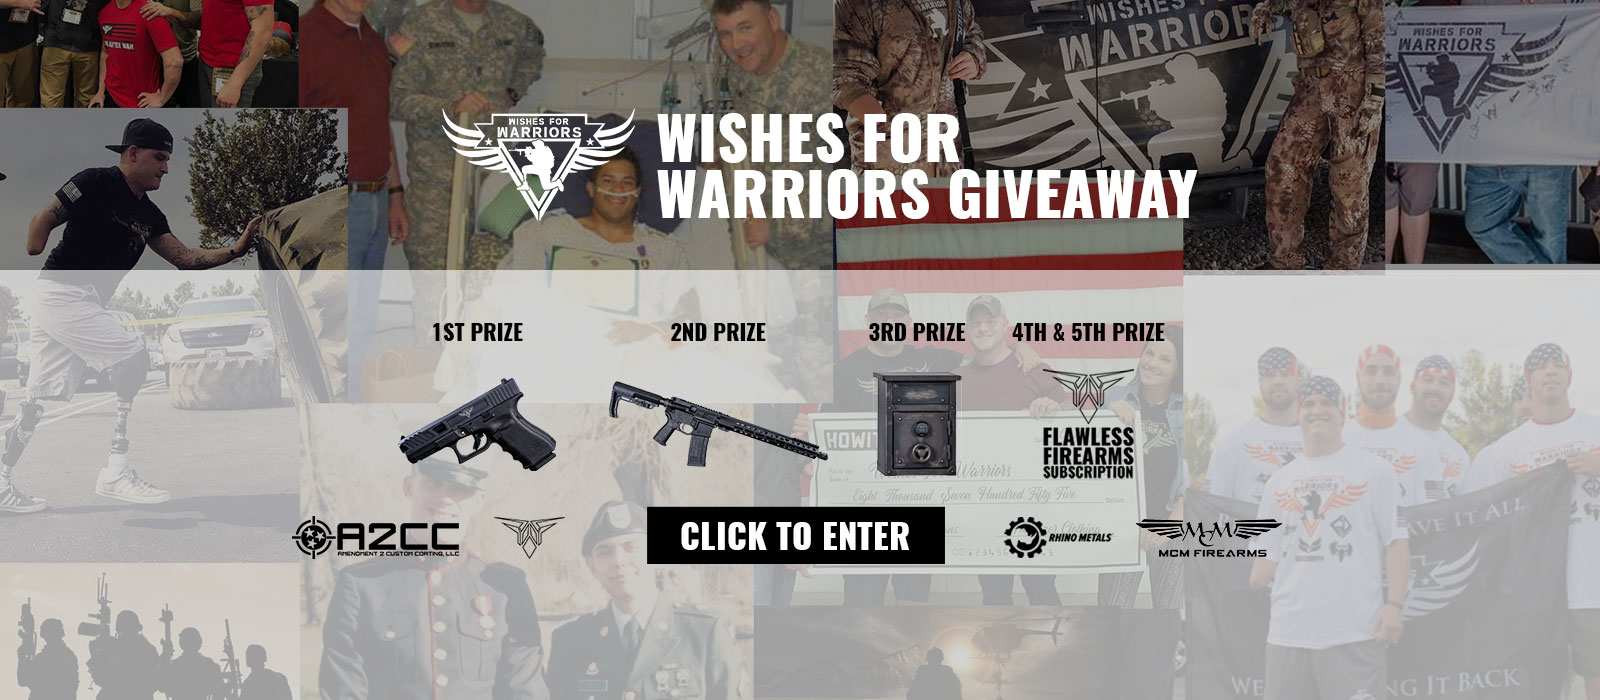 Wishes 4 warriors giveaway